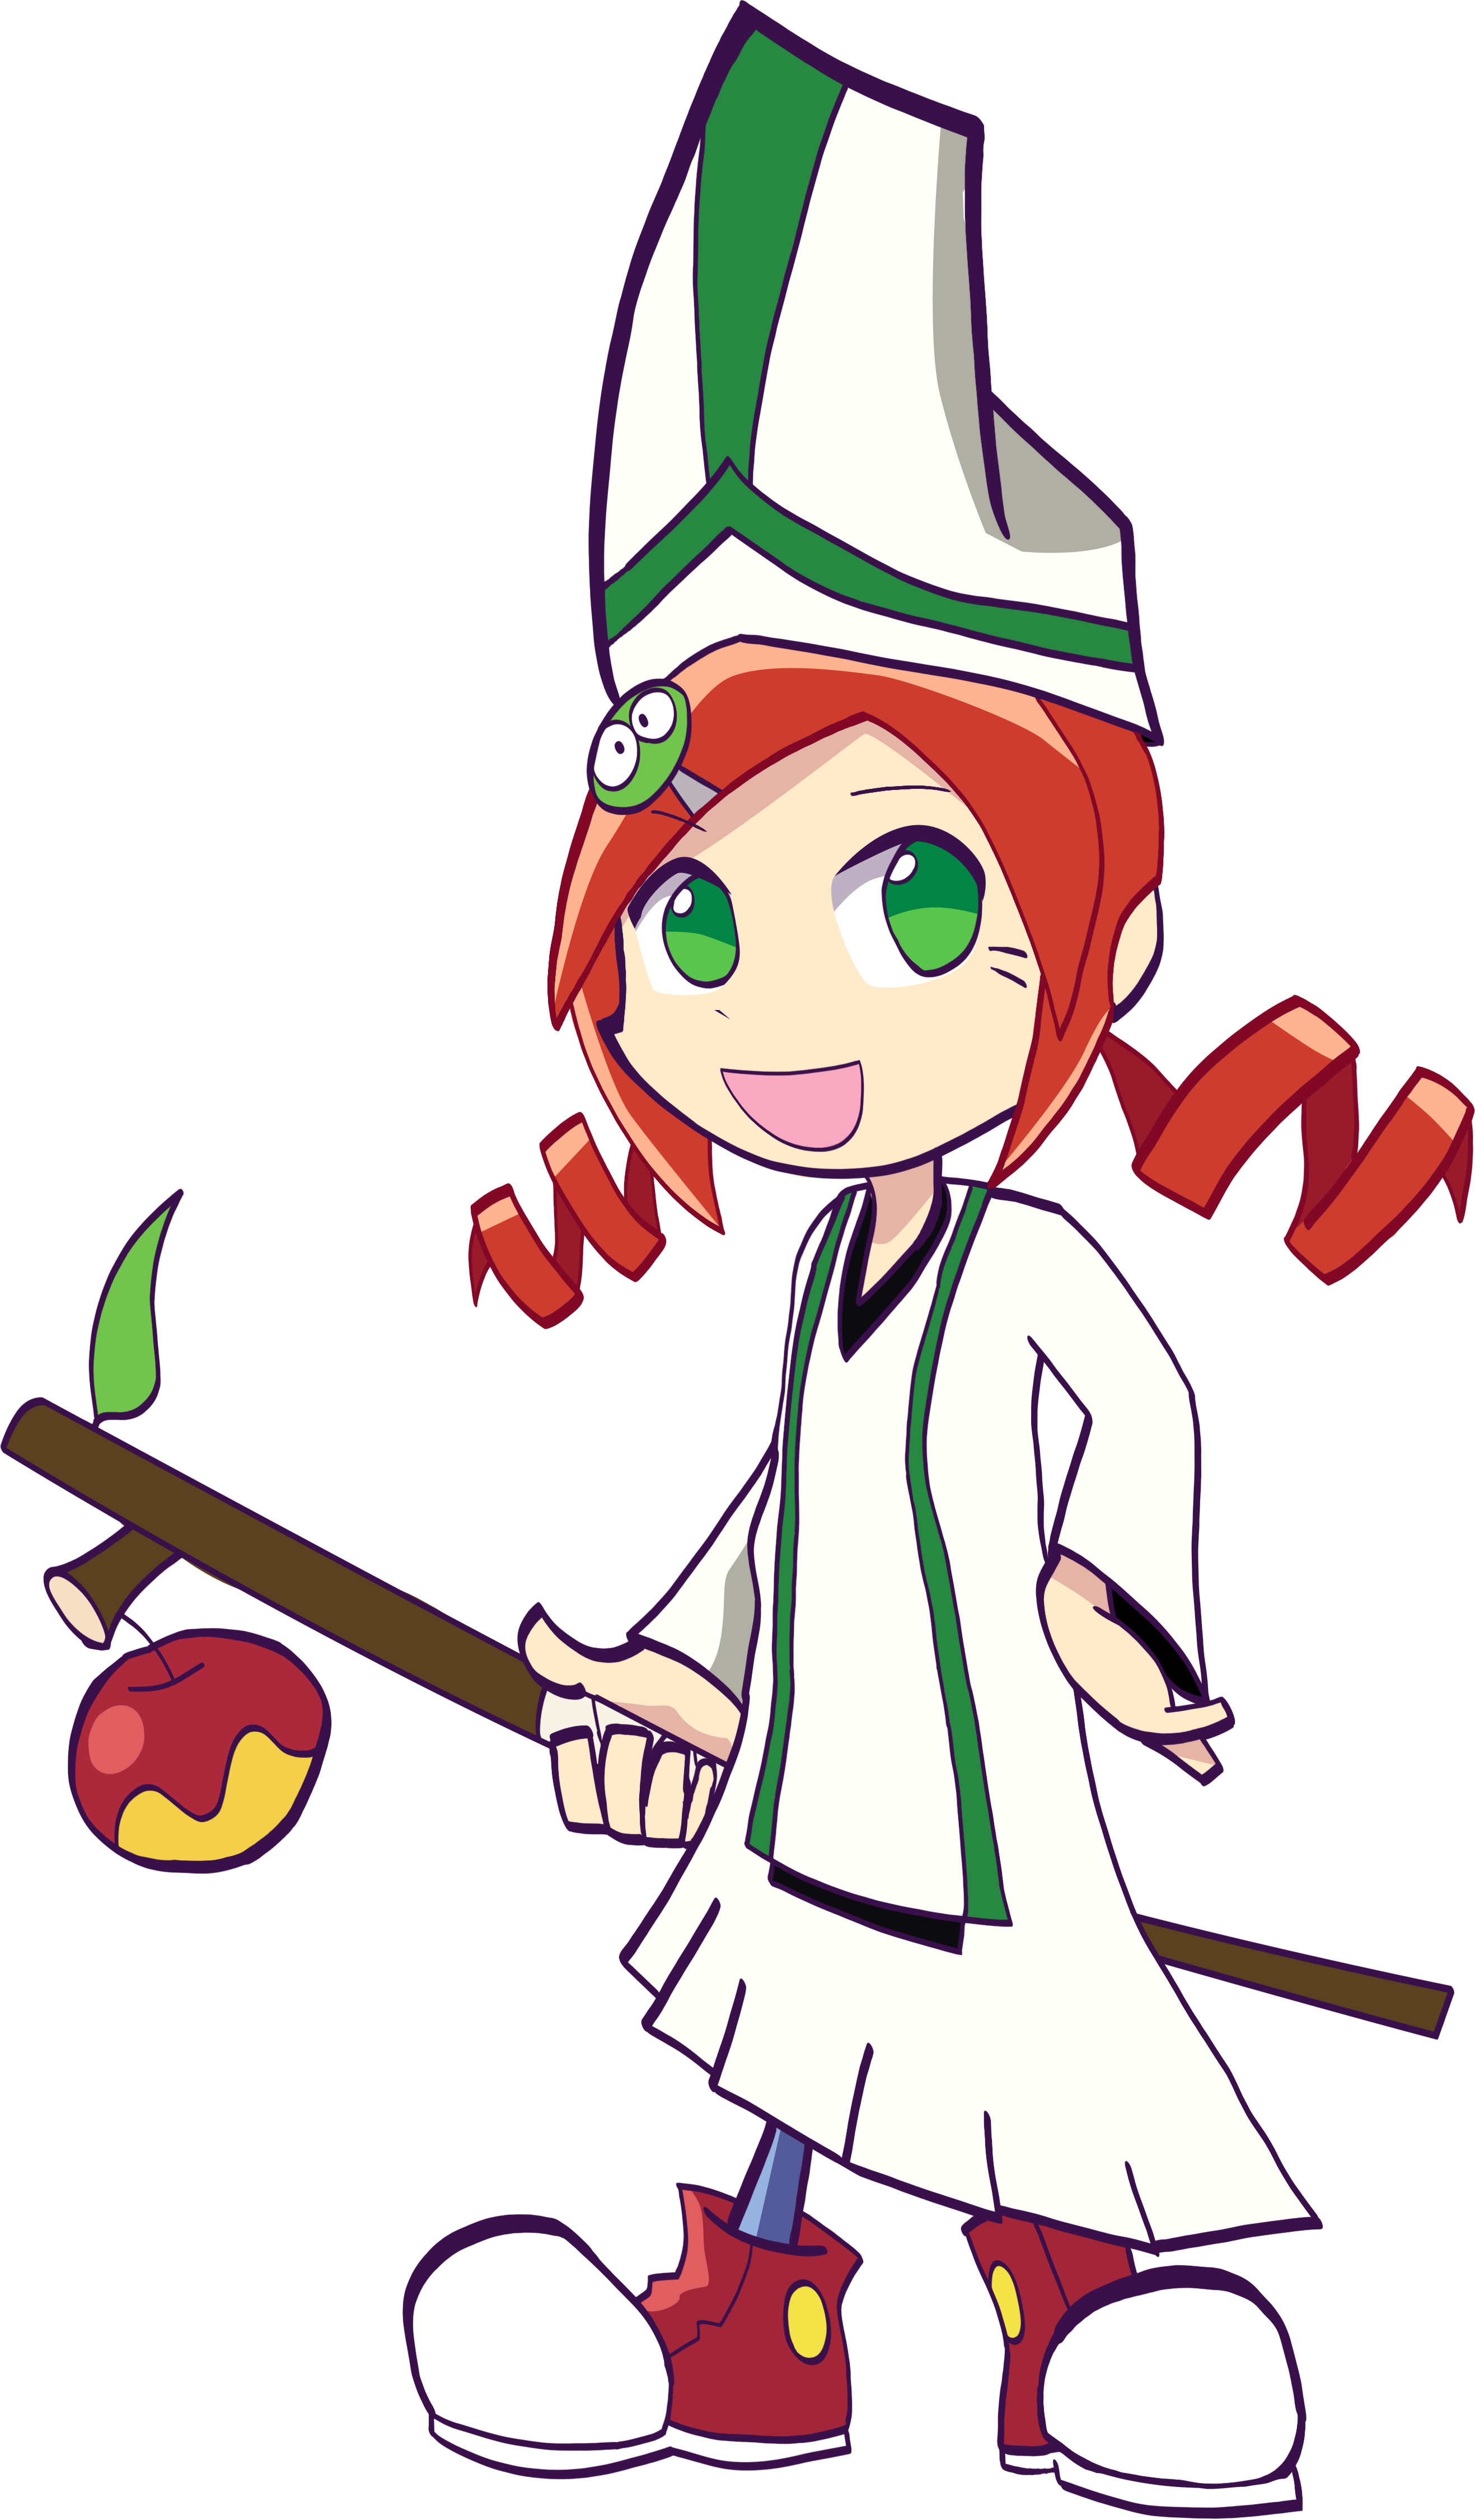 Ringo Ando from Puyo Puyo as the Cleric